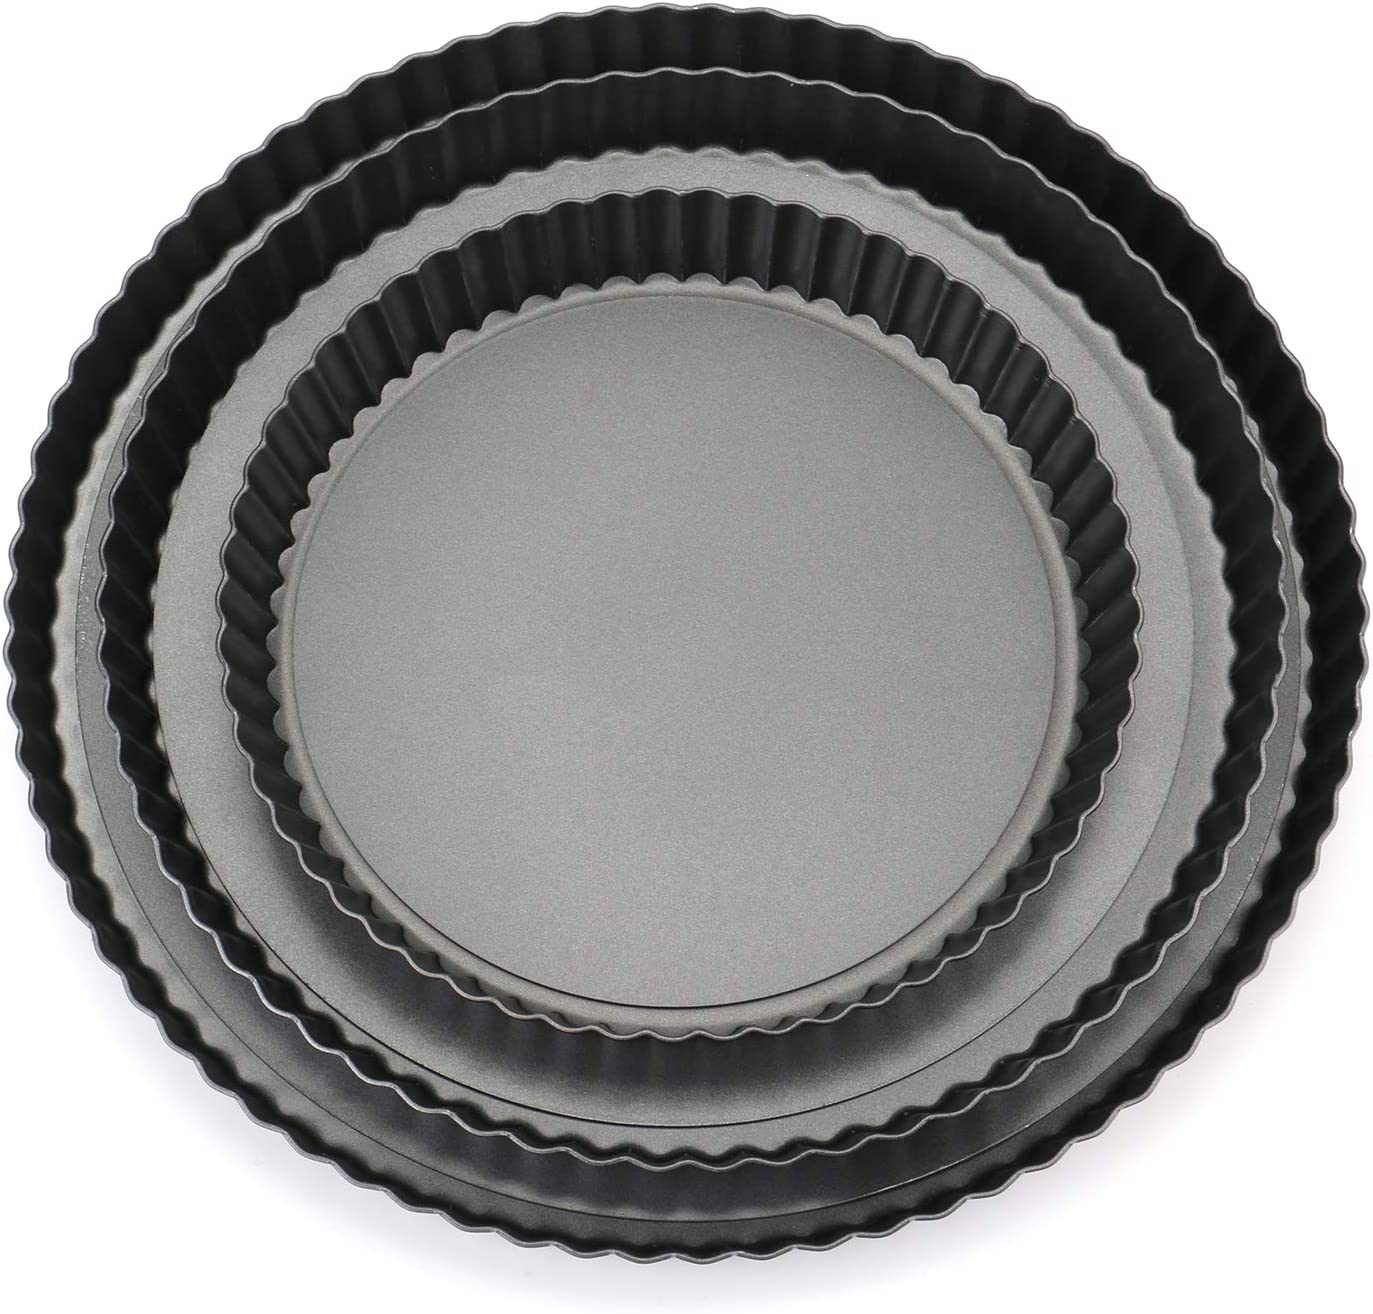 Tosnail Non-stick Quiche Pan Tart Pan Pie Pan with Removable Loose Bottom - Set of 3